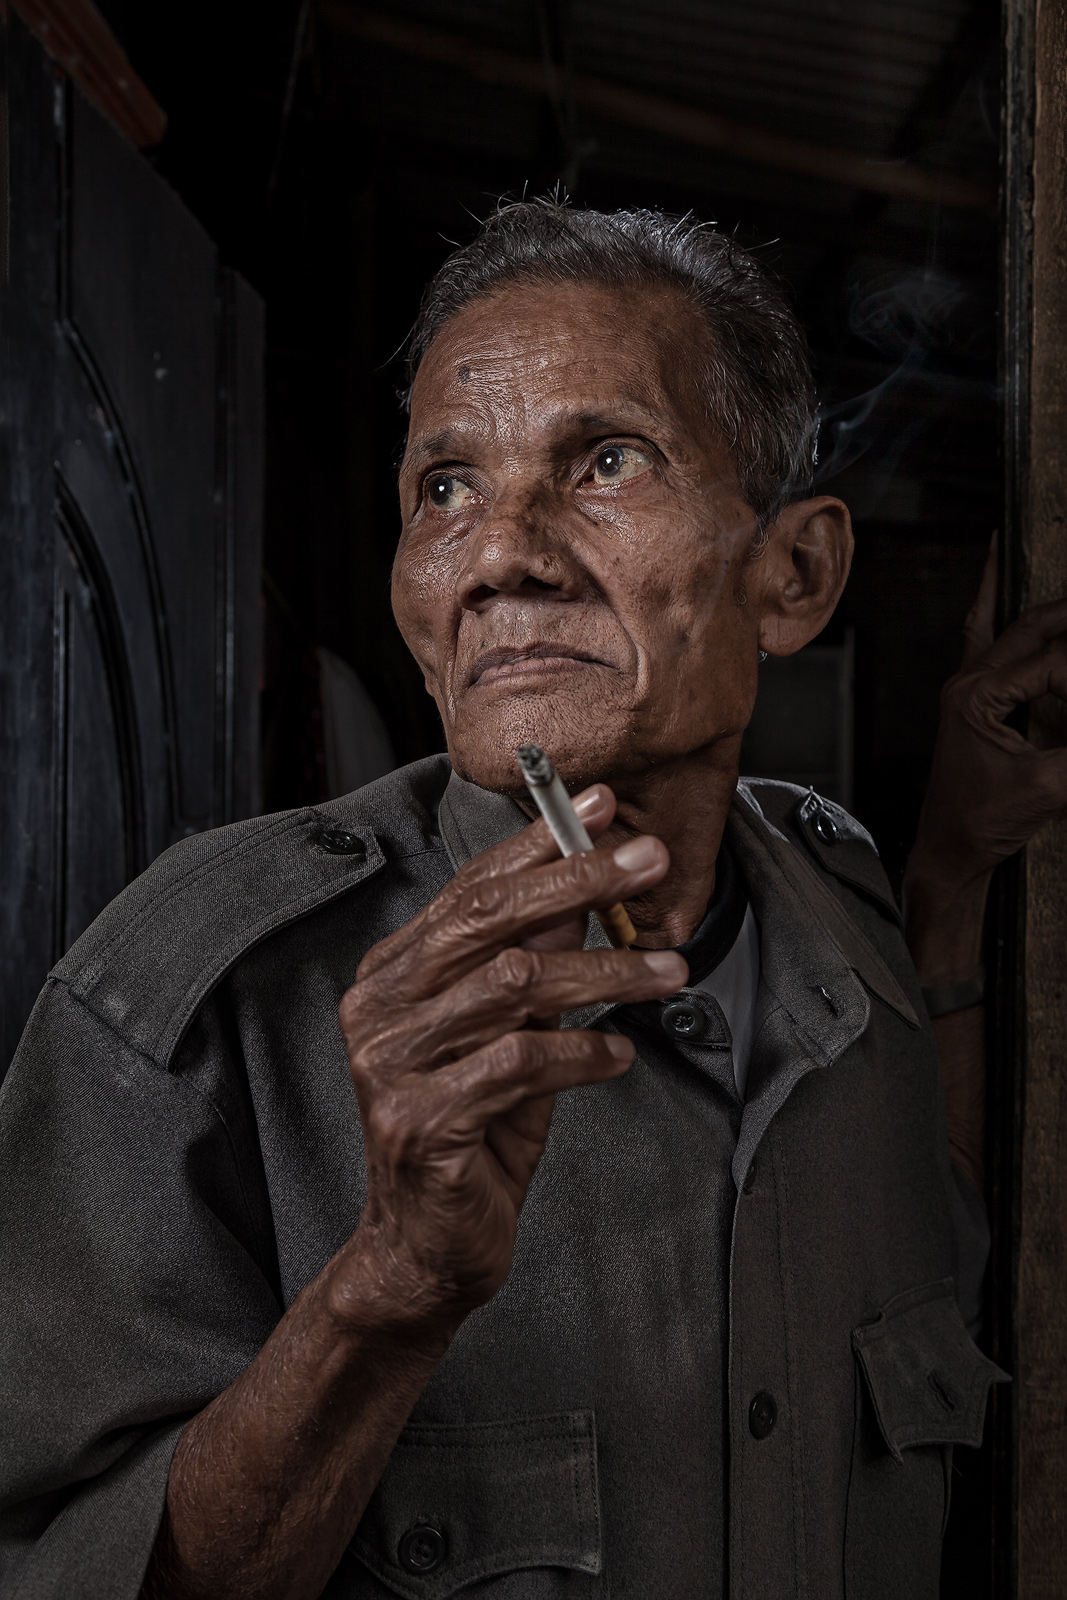 asia,asian,environmental portait,indonesia,indonesian,jakarta,java,male,man,old,portrait,rumpin,smoking,west java, photo